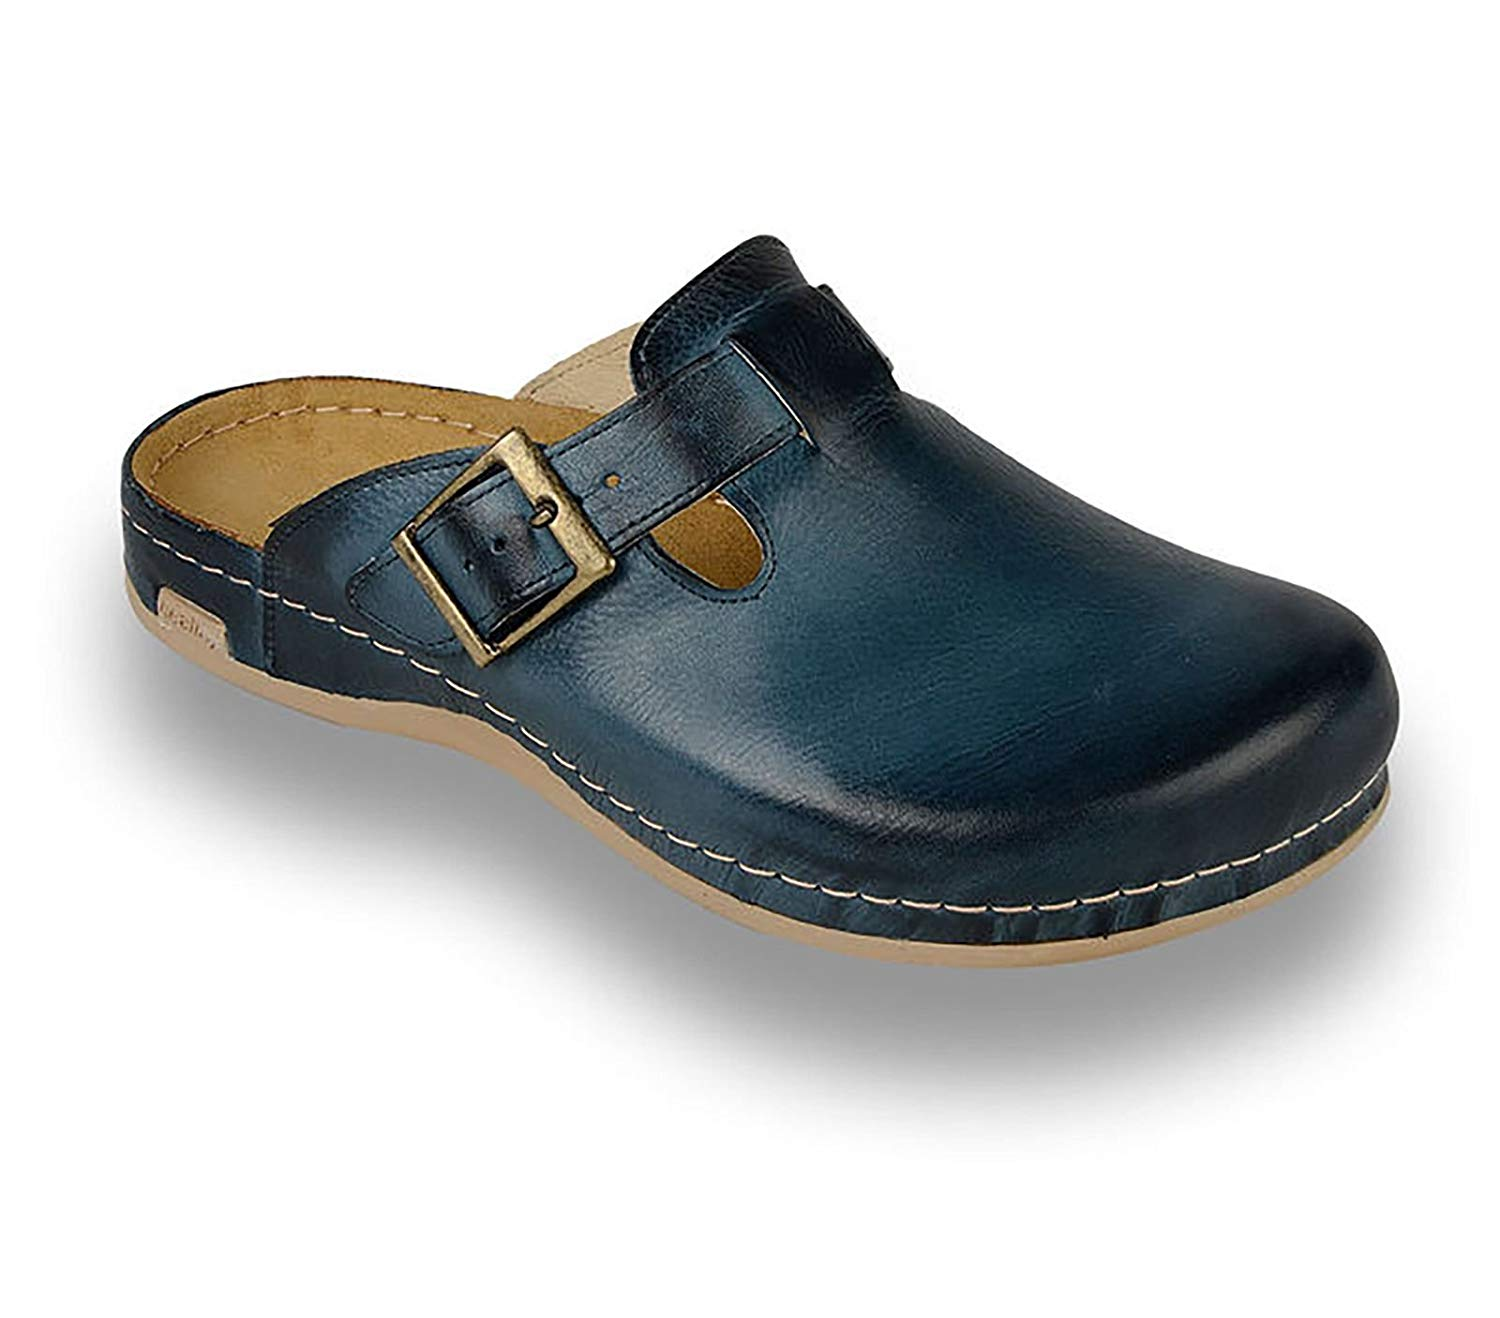 968351234b6 Cheap Mens Leather Mule Slippers, find Mens Leather Mule Slippers ...